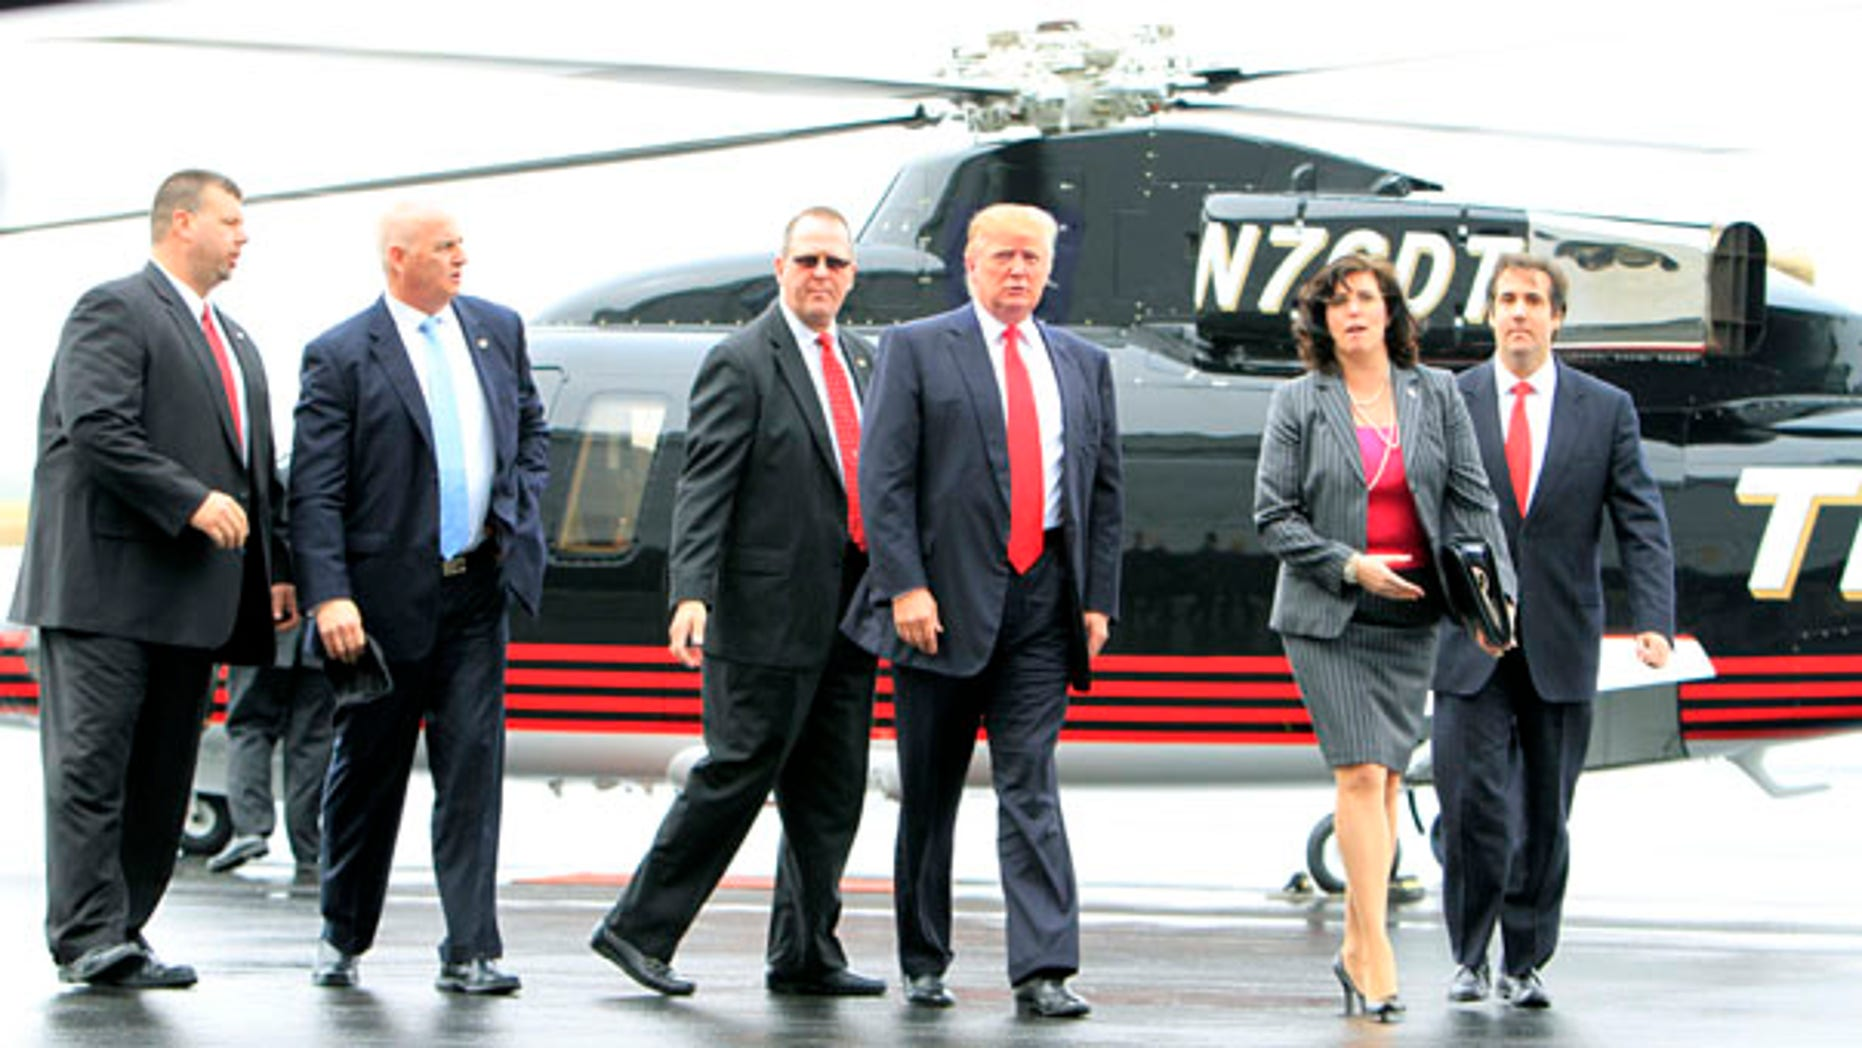 Wednesday: Possible 2012 Republican contender Donald Trump arrives at the Pease International Tradeport in Portsmouth, N.H.